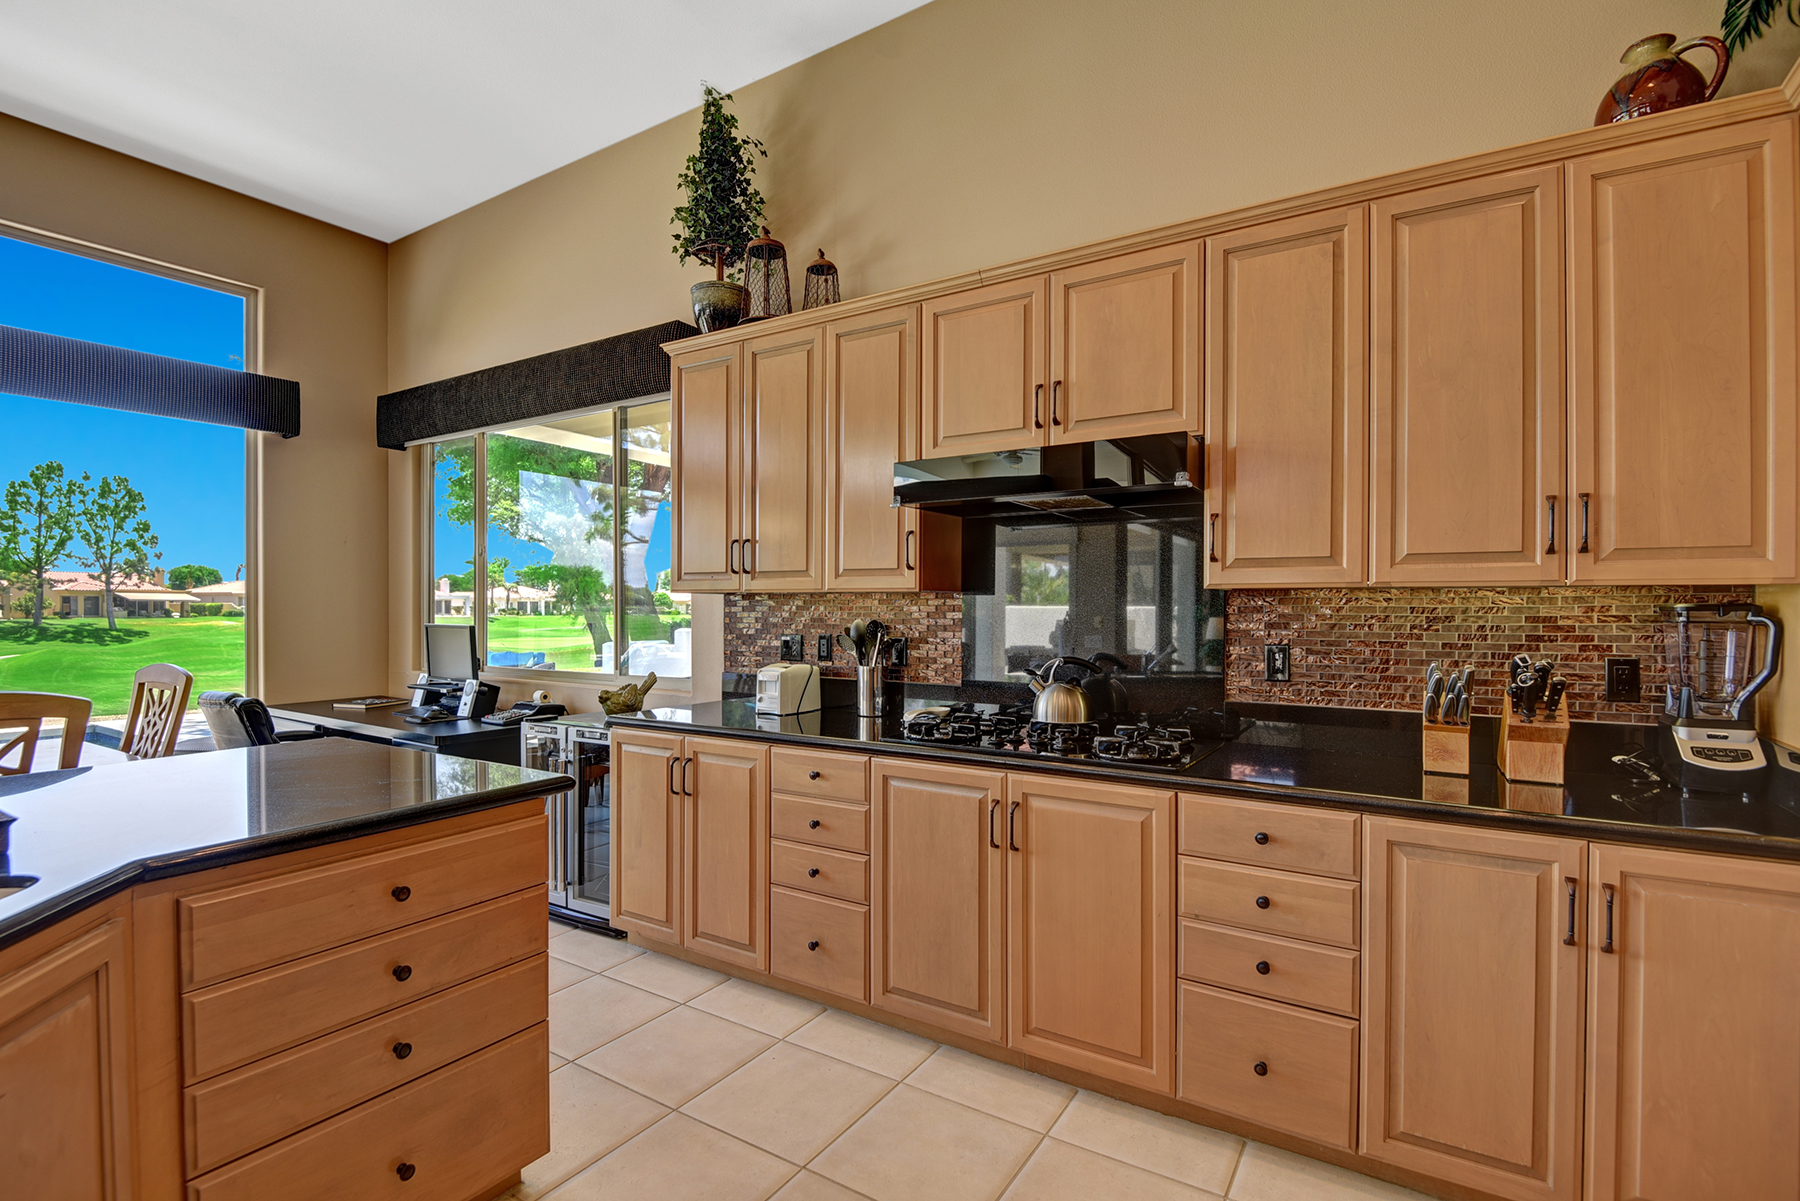 A87DD5D9-E0BE-B3C8-85E2A7BA1B91A435-KITCHEN RS.jpg